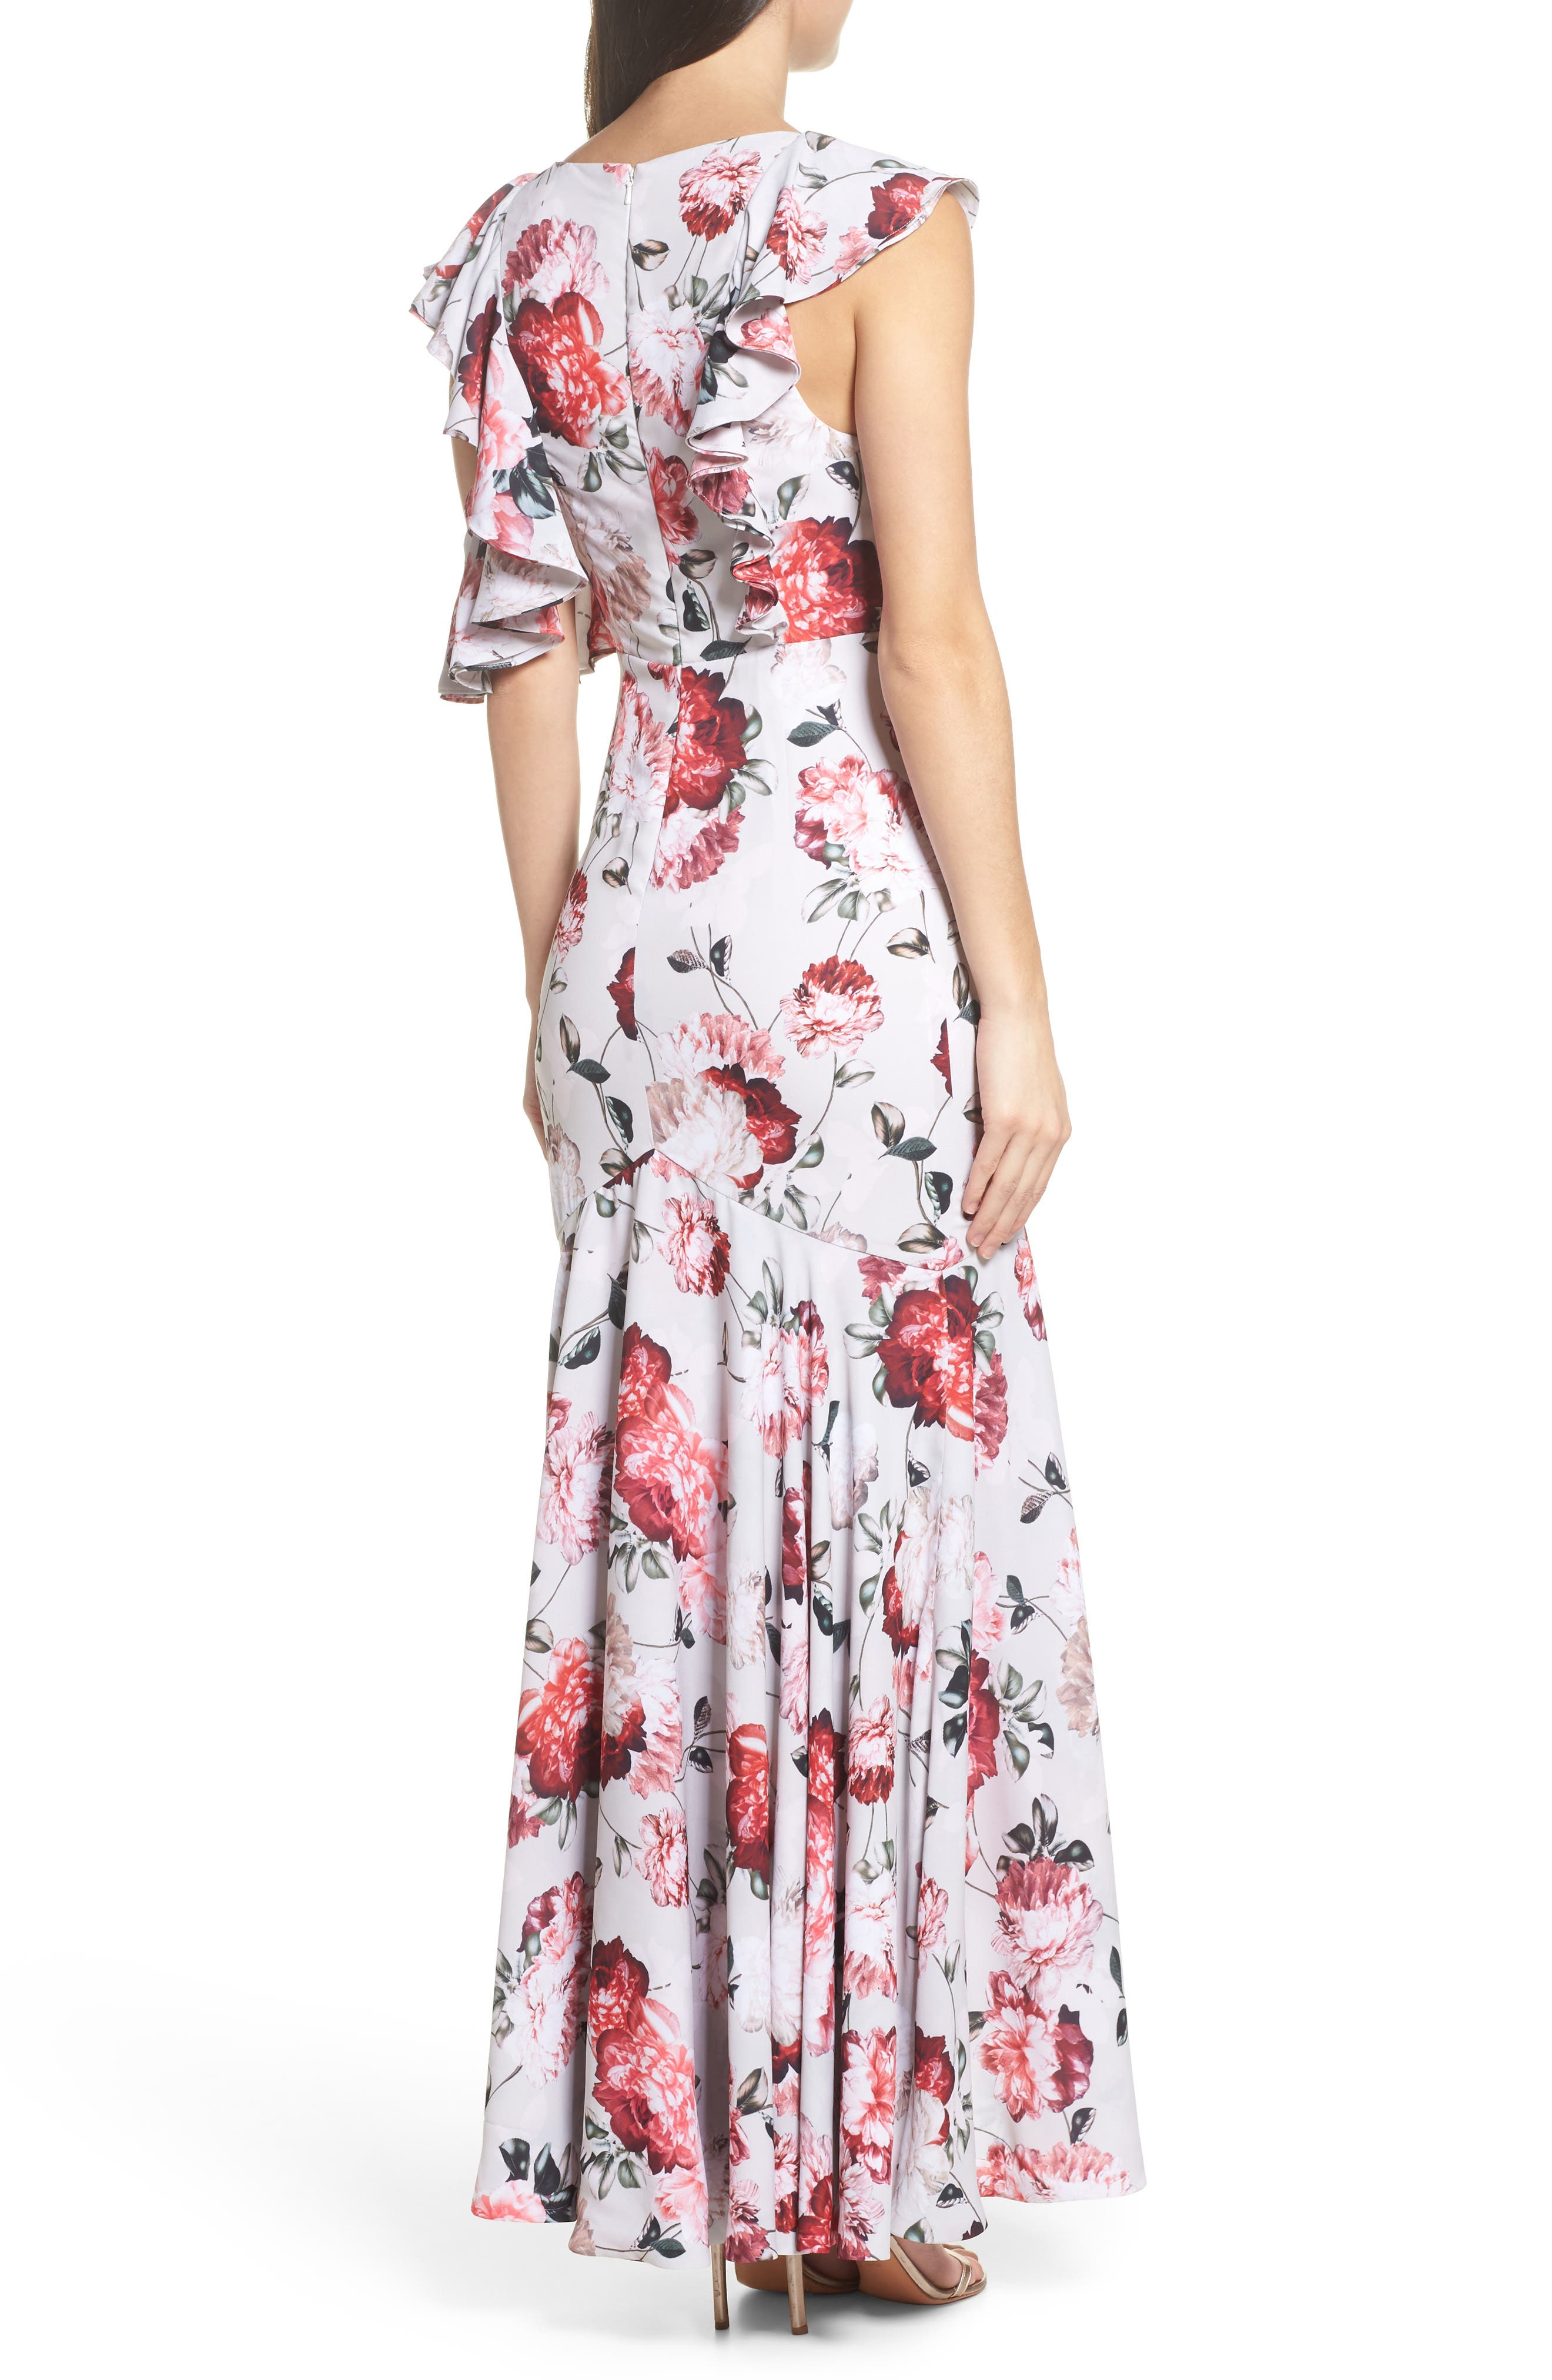 Beckman Floral Georgette Ruffle Maxi Dress,                             Alternate thumbnail 2, color,                             Blushing Blooms